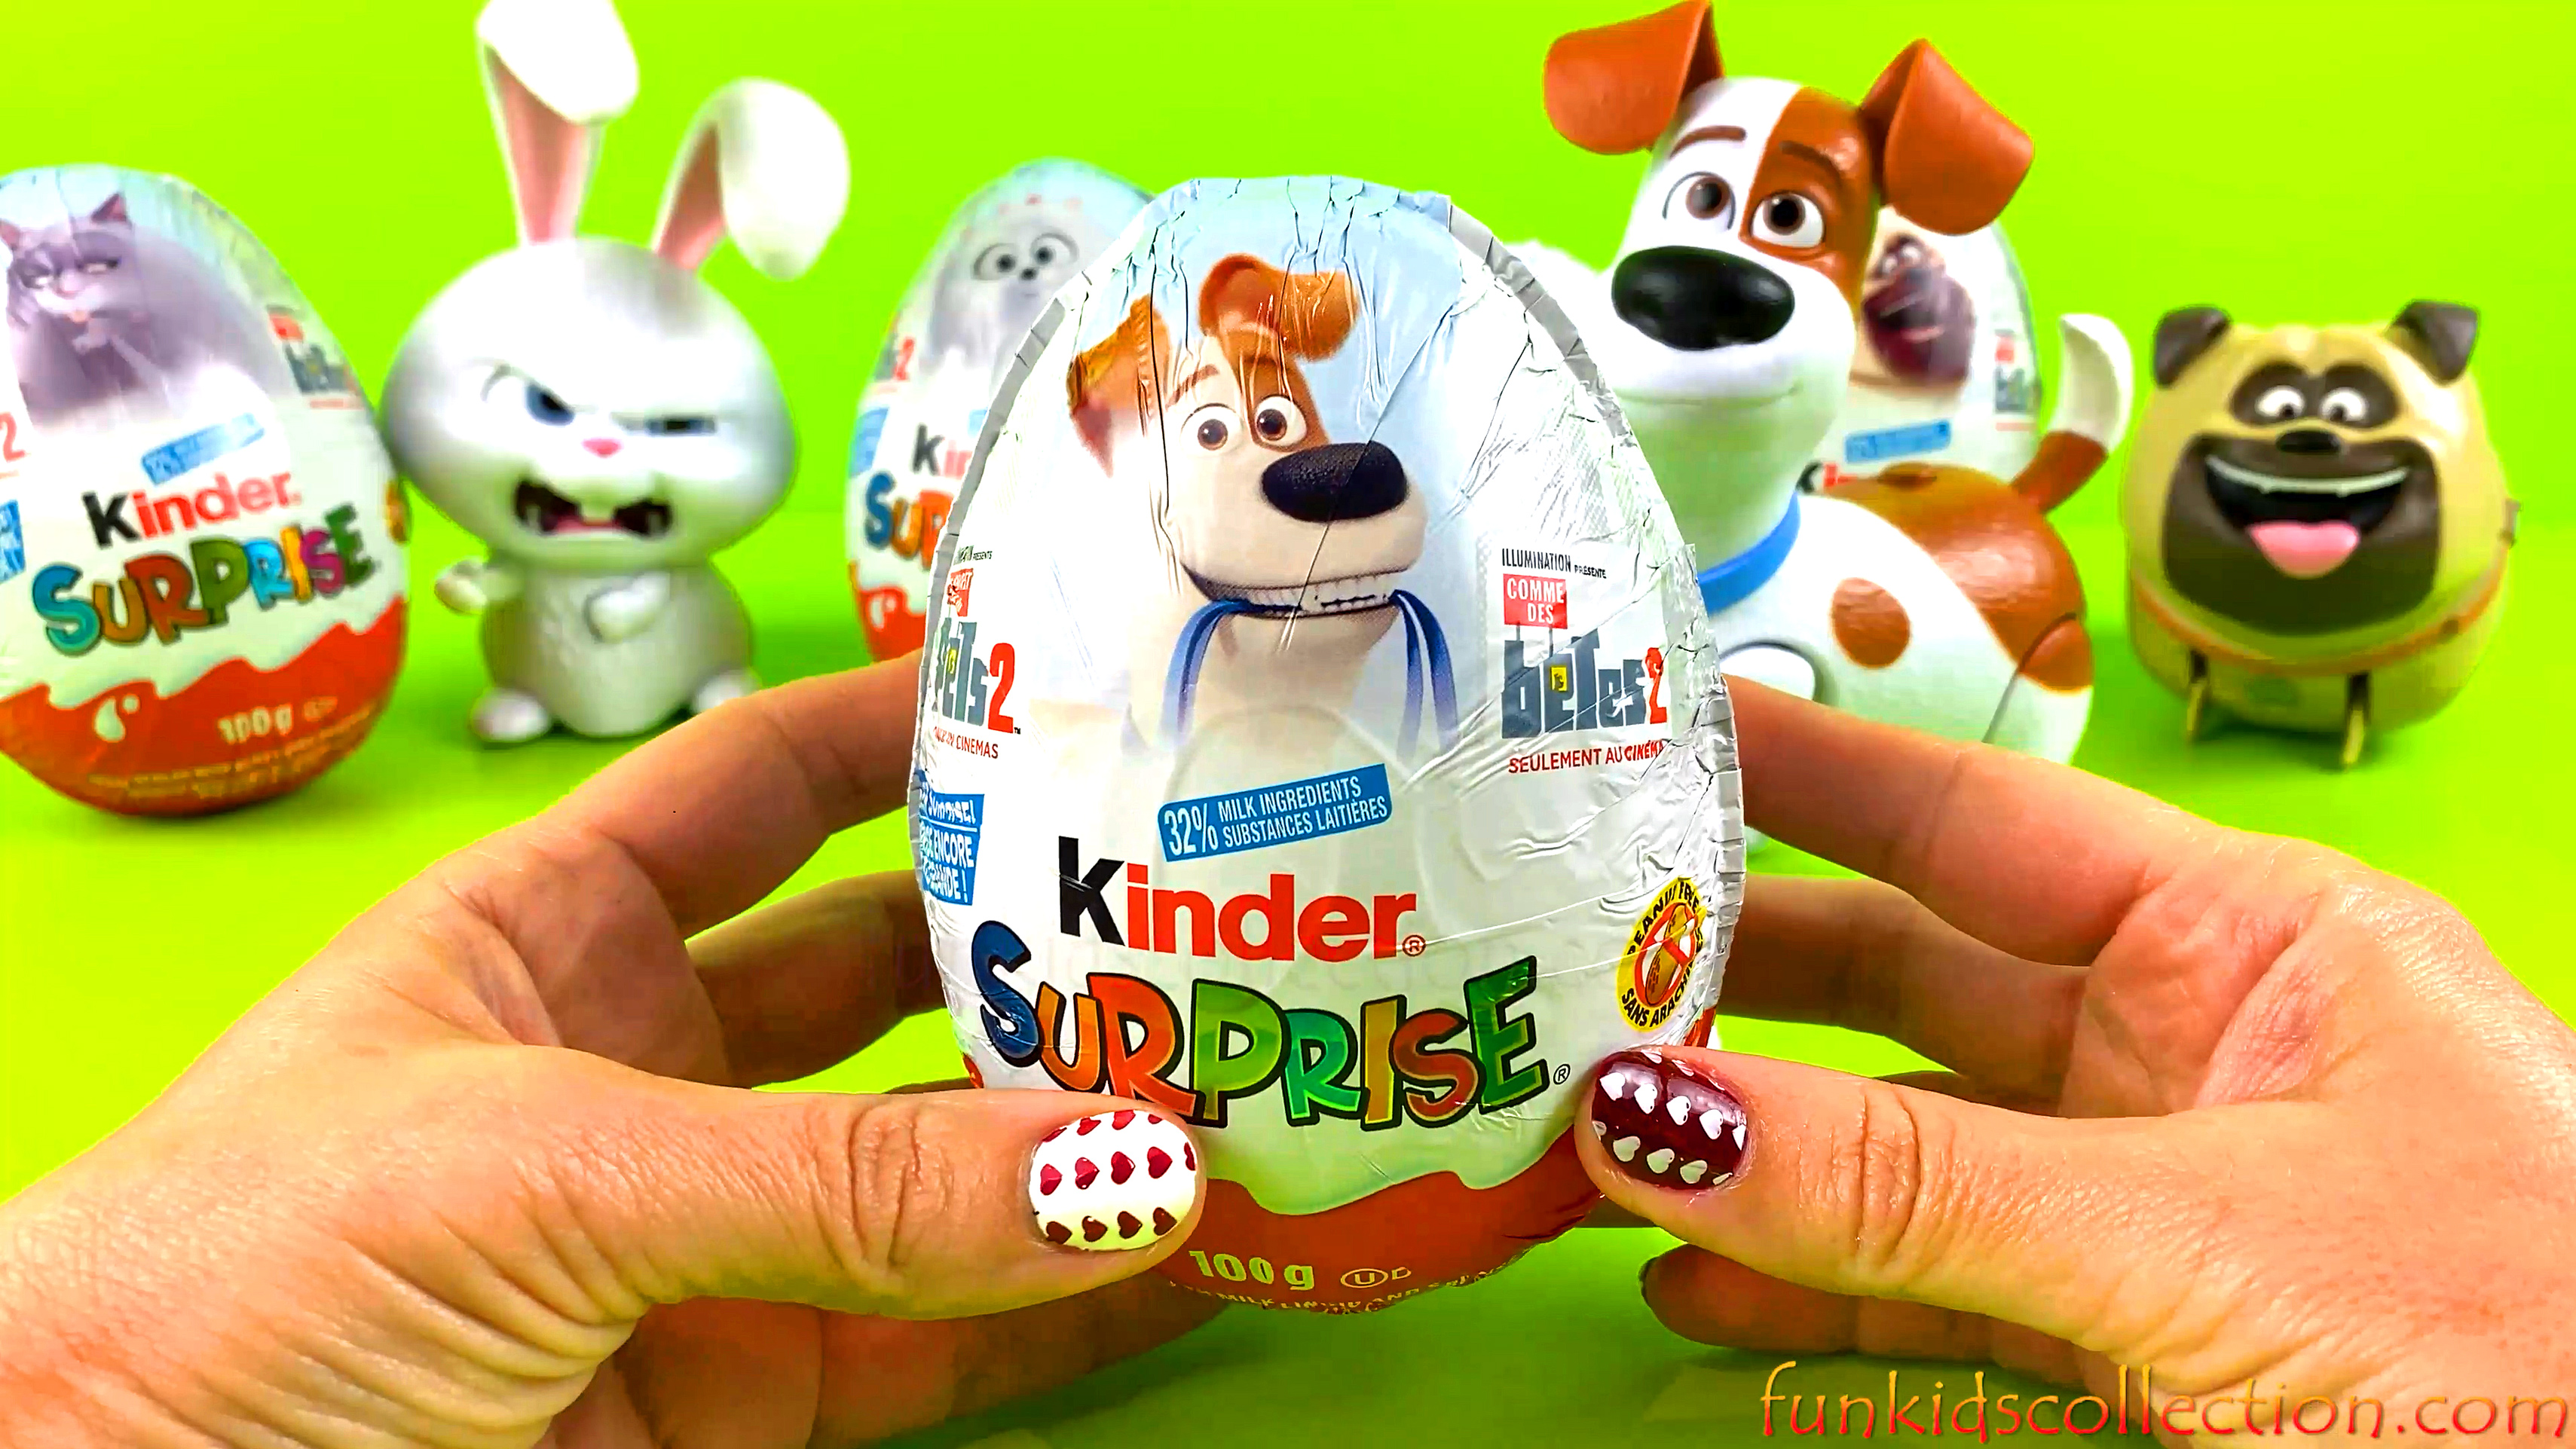 Kinder Eggs | The Secret Life of Pets 2 | Opening The Secret Life of Pets 2 Kinder Egg Surprises